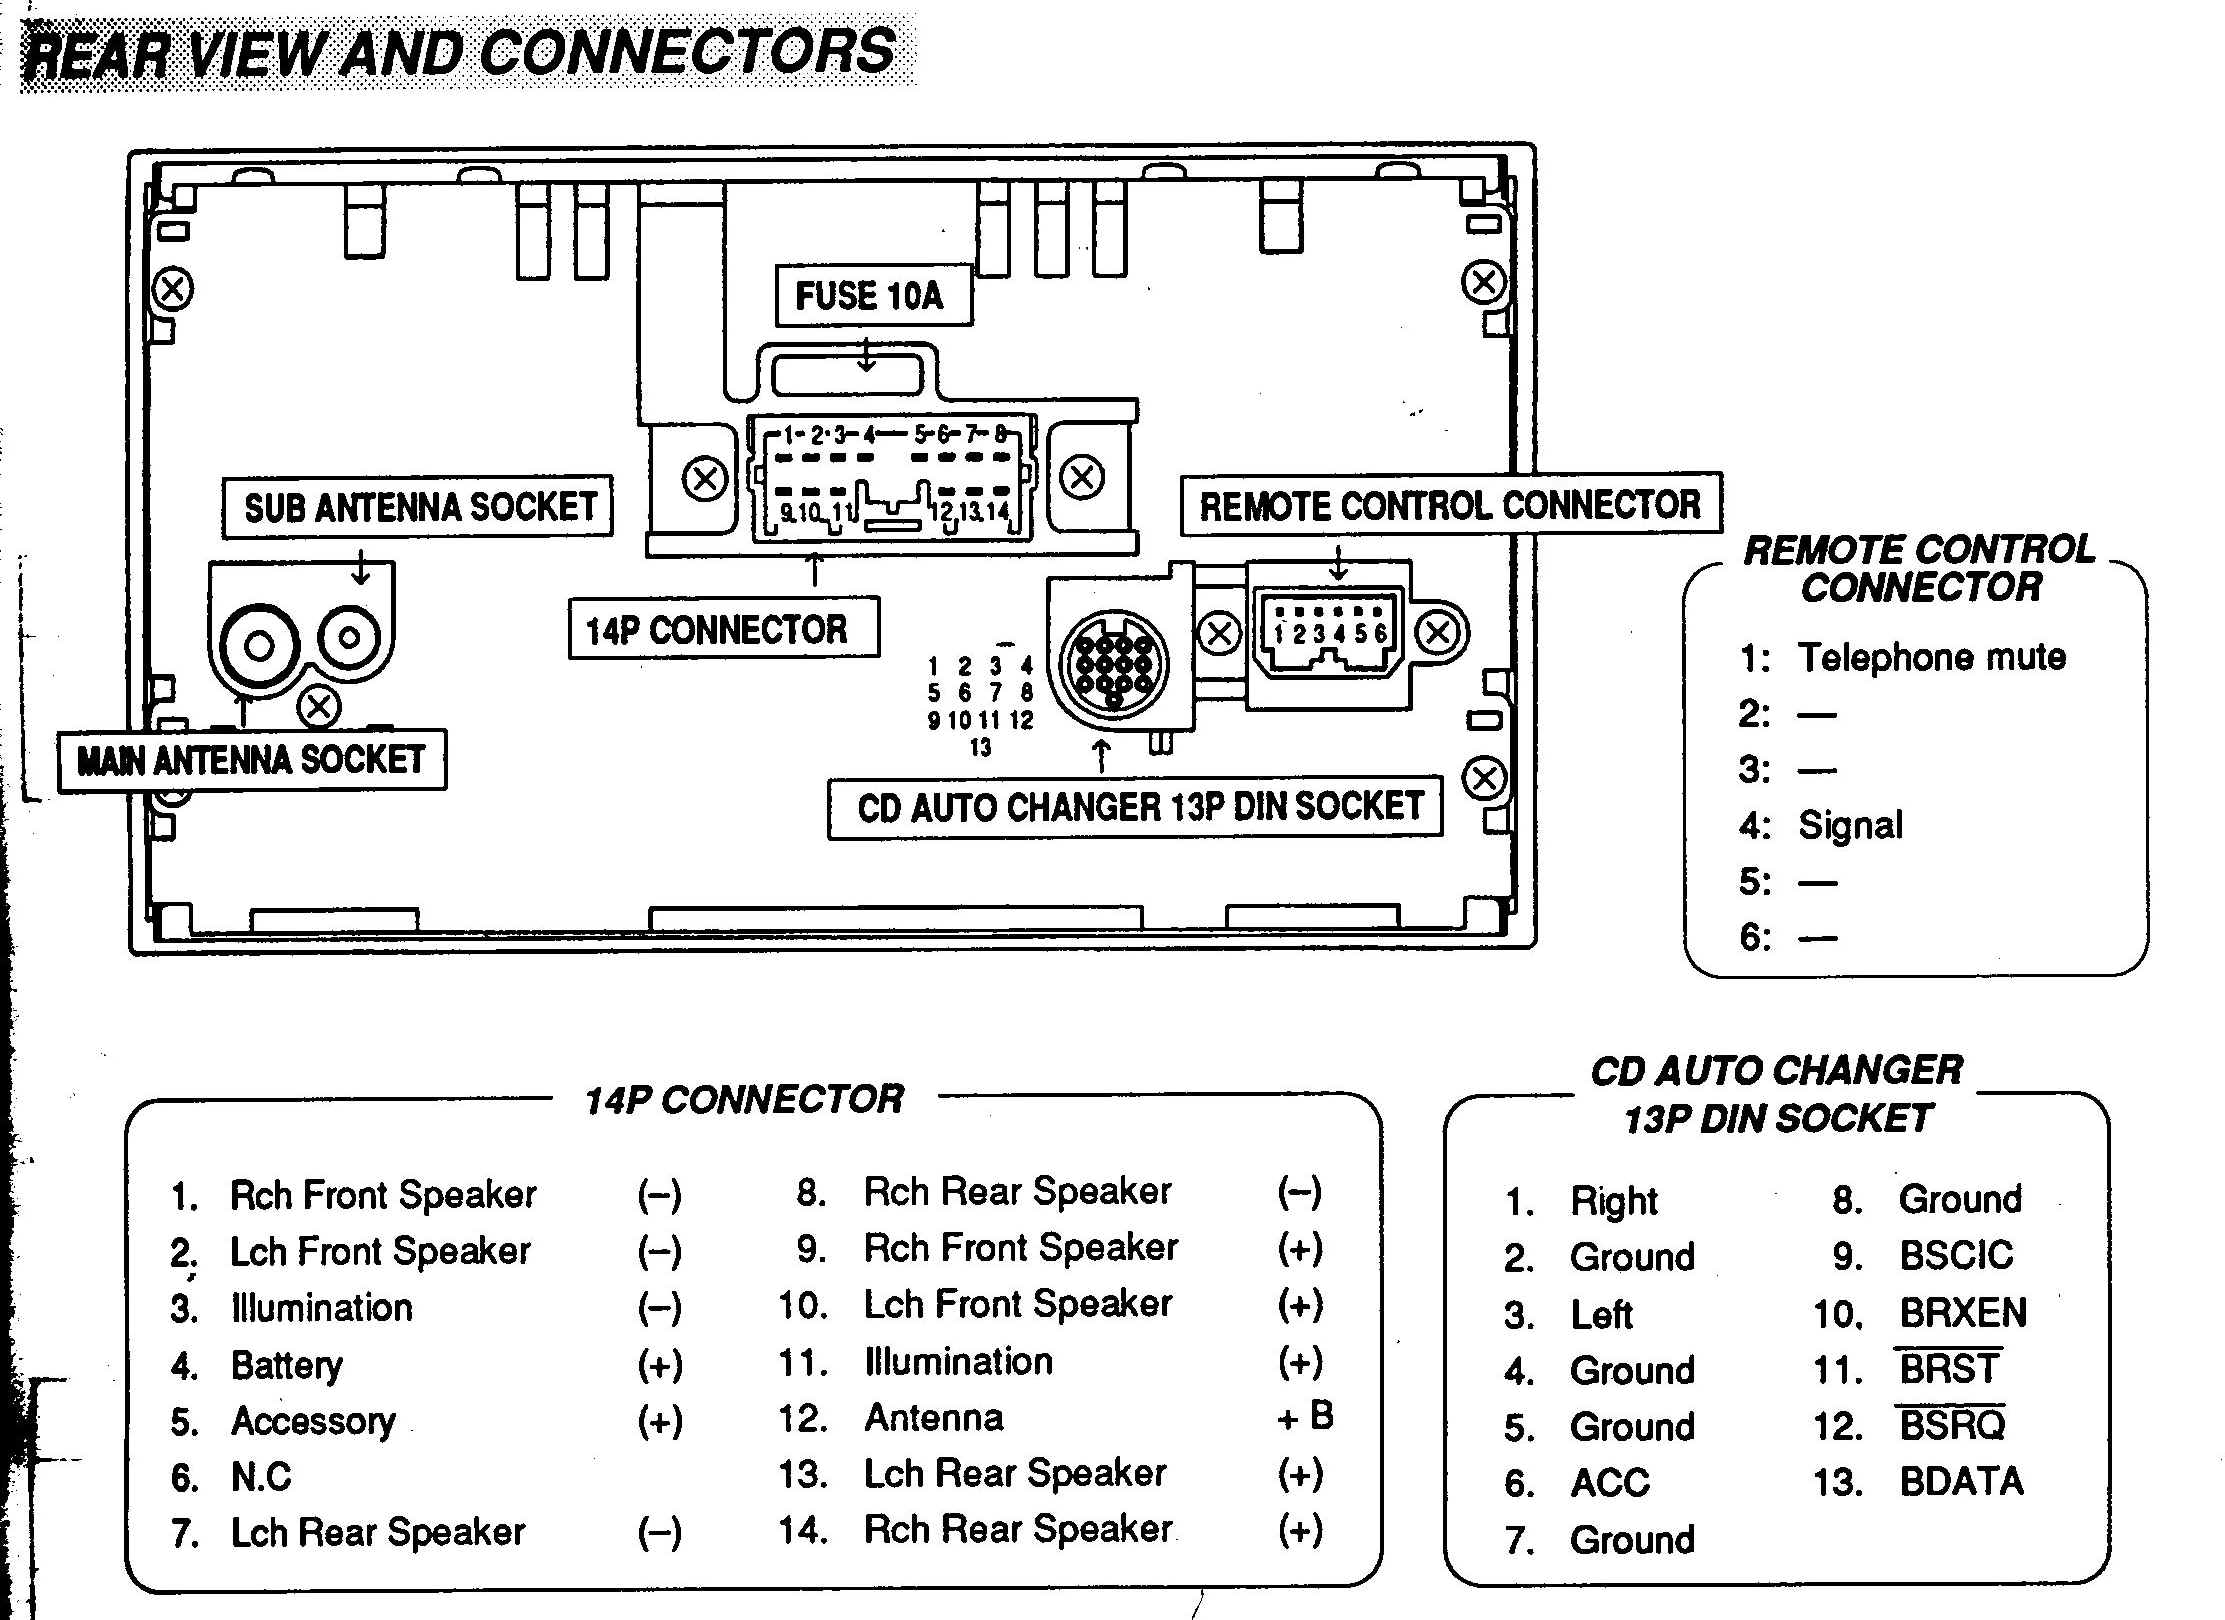 Wiring Diagram As Well Car Radio Color Codes On 1987 Buick Splitter With Ic 741 Tip41tip42 Electronic Projects Circuits Stereo Help Wire Code Diagrams And Rh Carstereoremoval Com